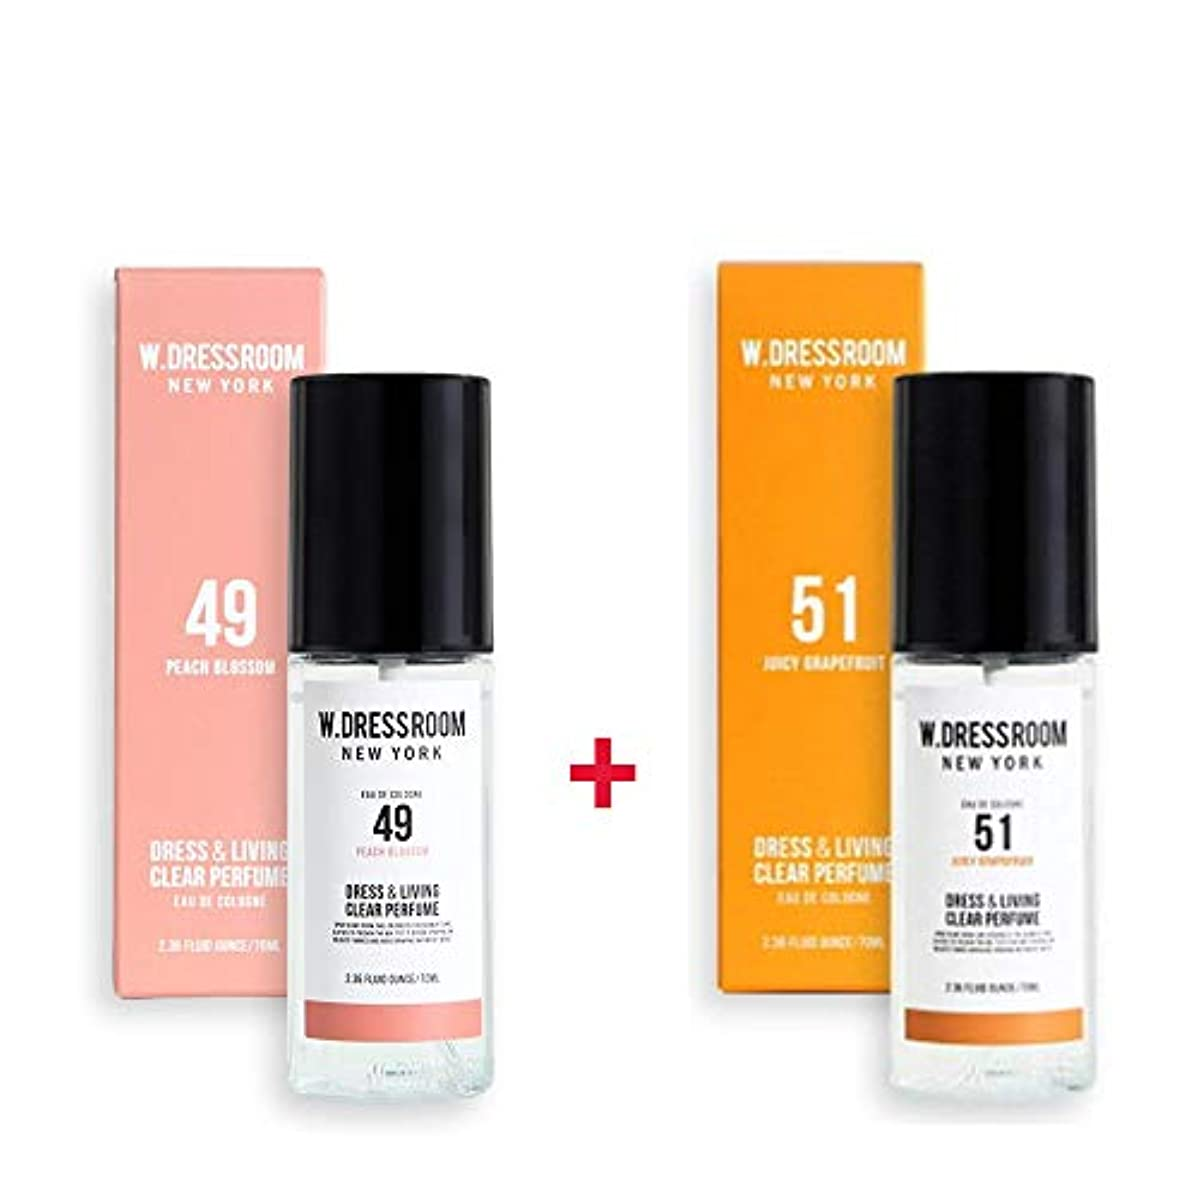 口ひげ有効破壊的W.DRESSROOM Dress & Living Clear Perfume 70ml (No 49 Peach Blossom)+(No 51 Juicy Grapefruit)